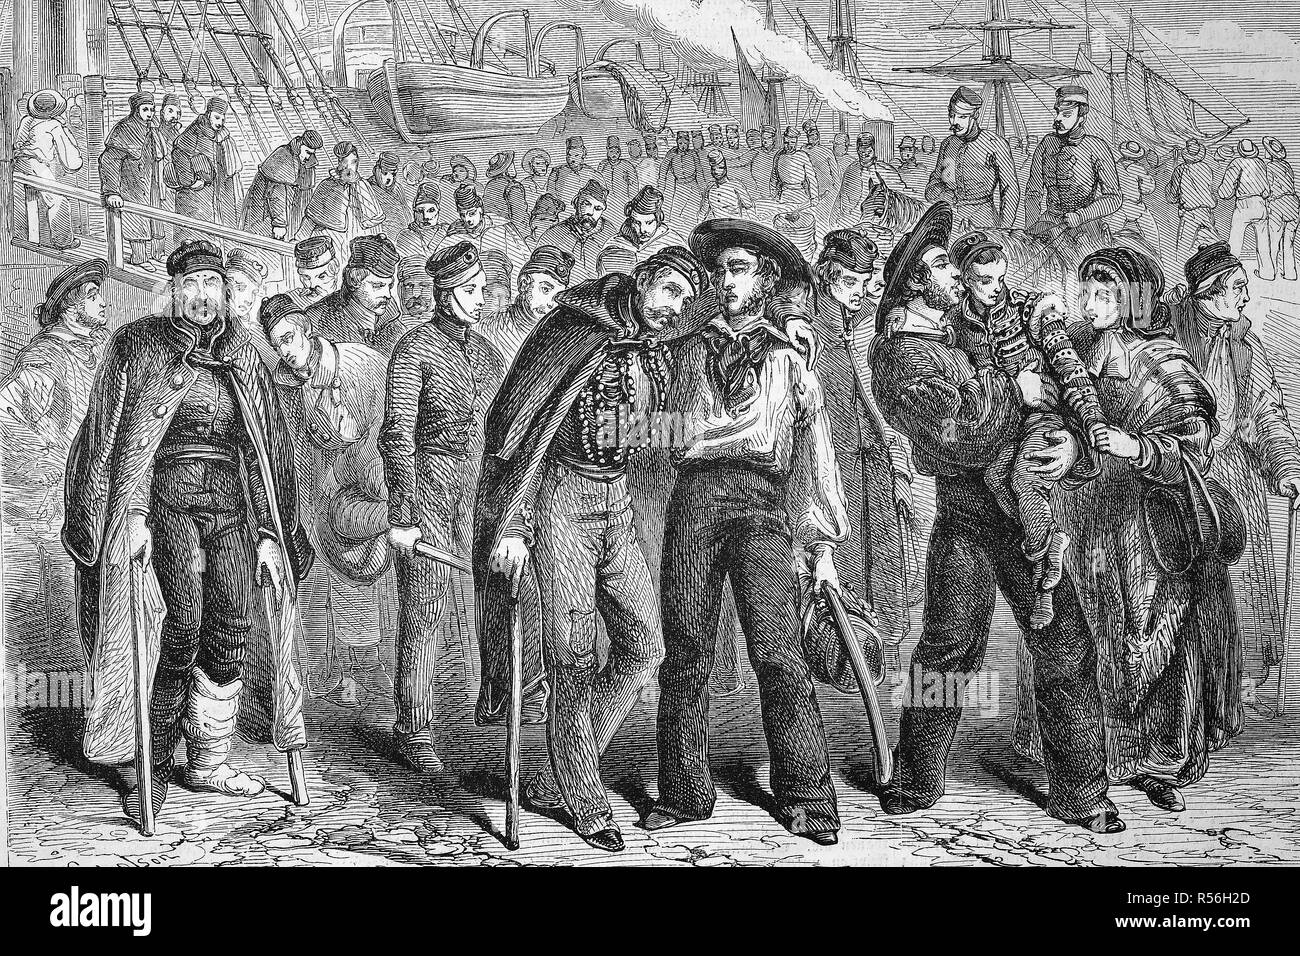 Crimean war, Return of wounded soldiers of the English army from the Crimea, 1857, woodcut, England - Stock Image